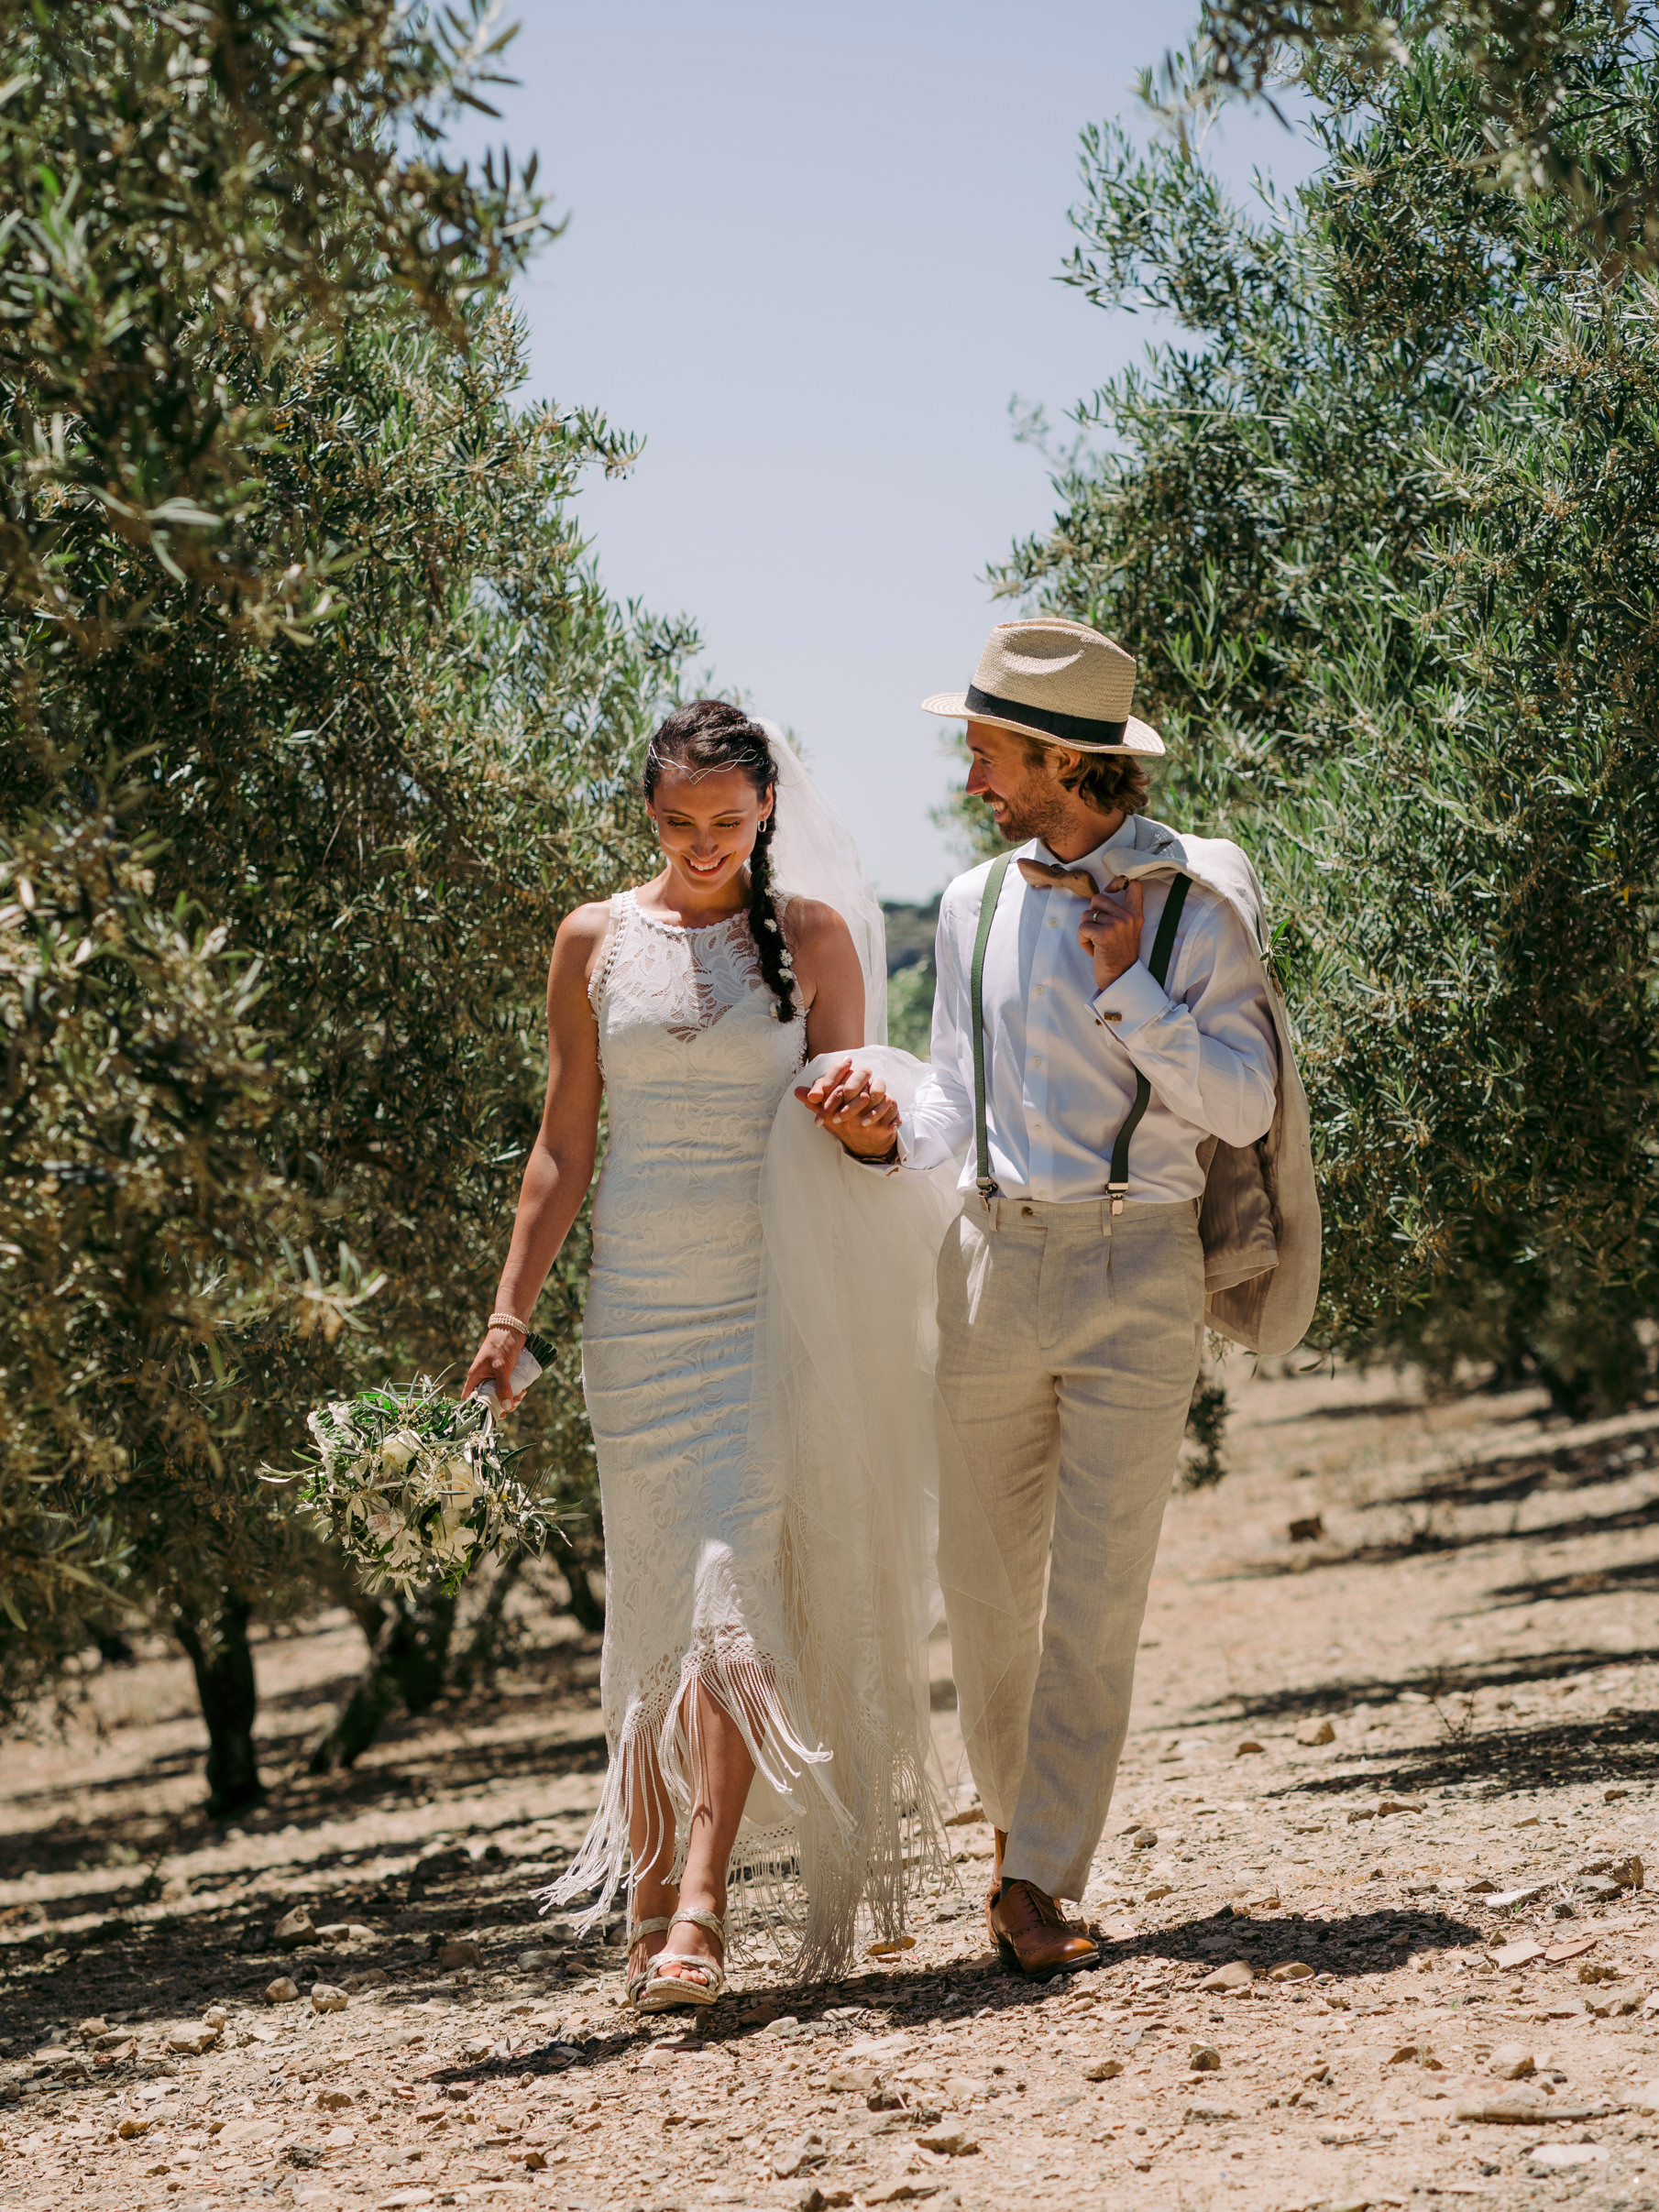 Wedding in Malaga Olive trees